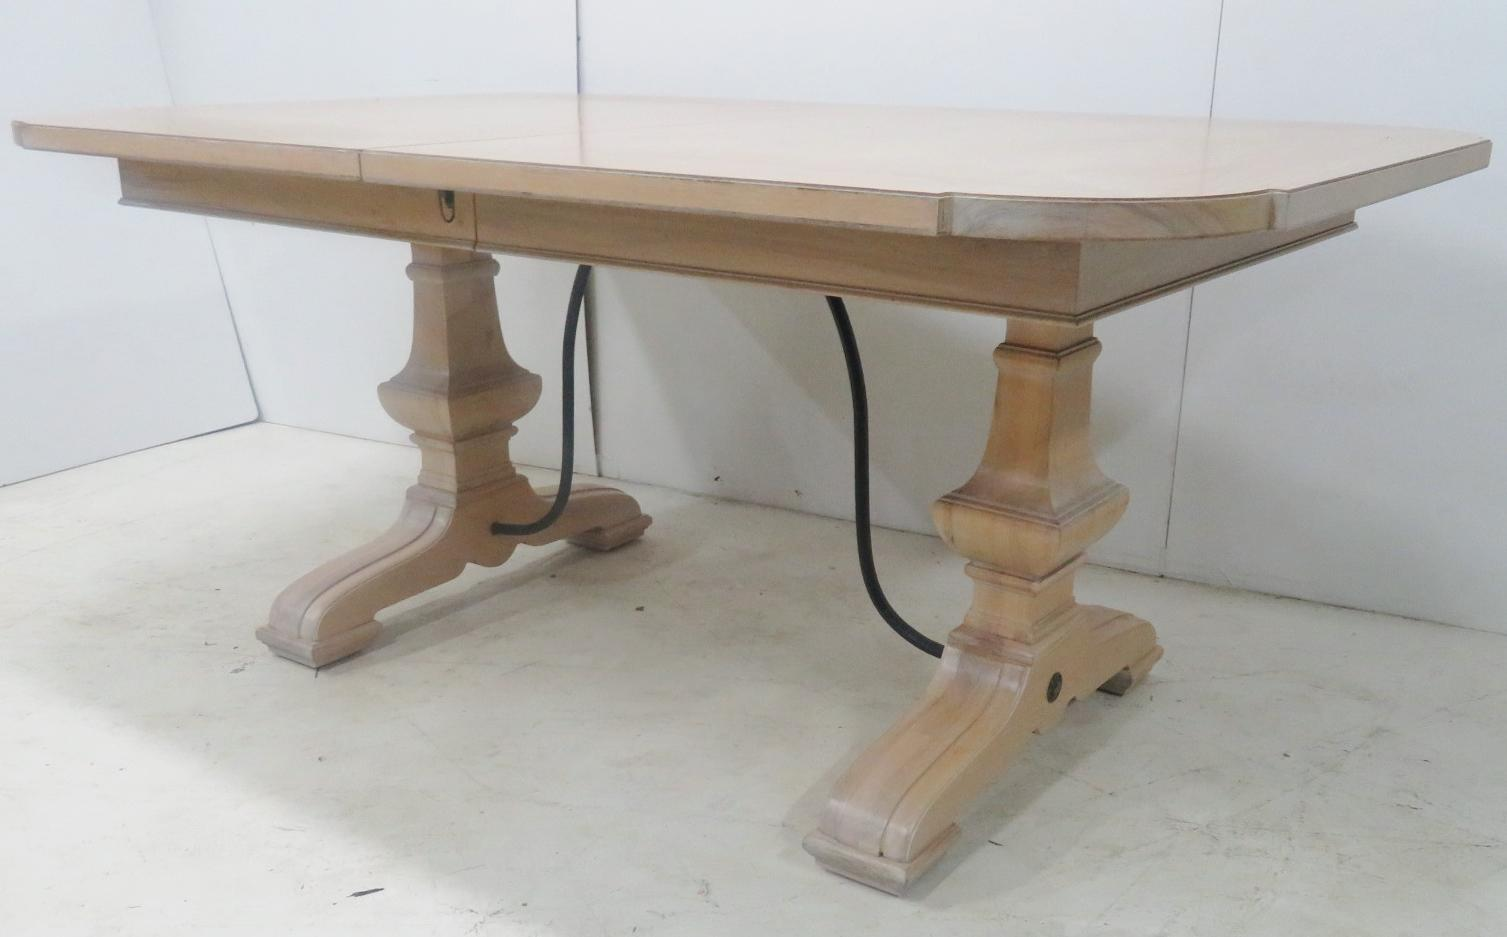 Charmant Oak Country French Trestle Table With White Pickled Finish, Iron Stretcher  Base . A Provincial